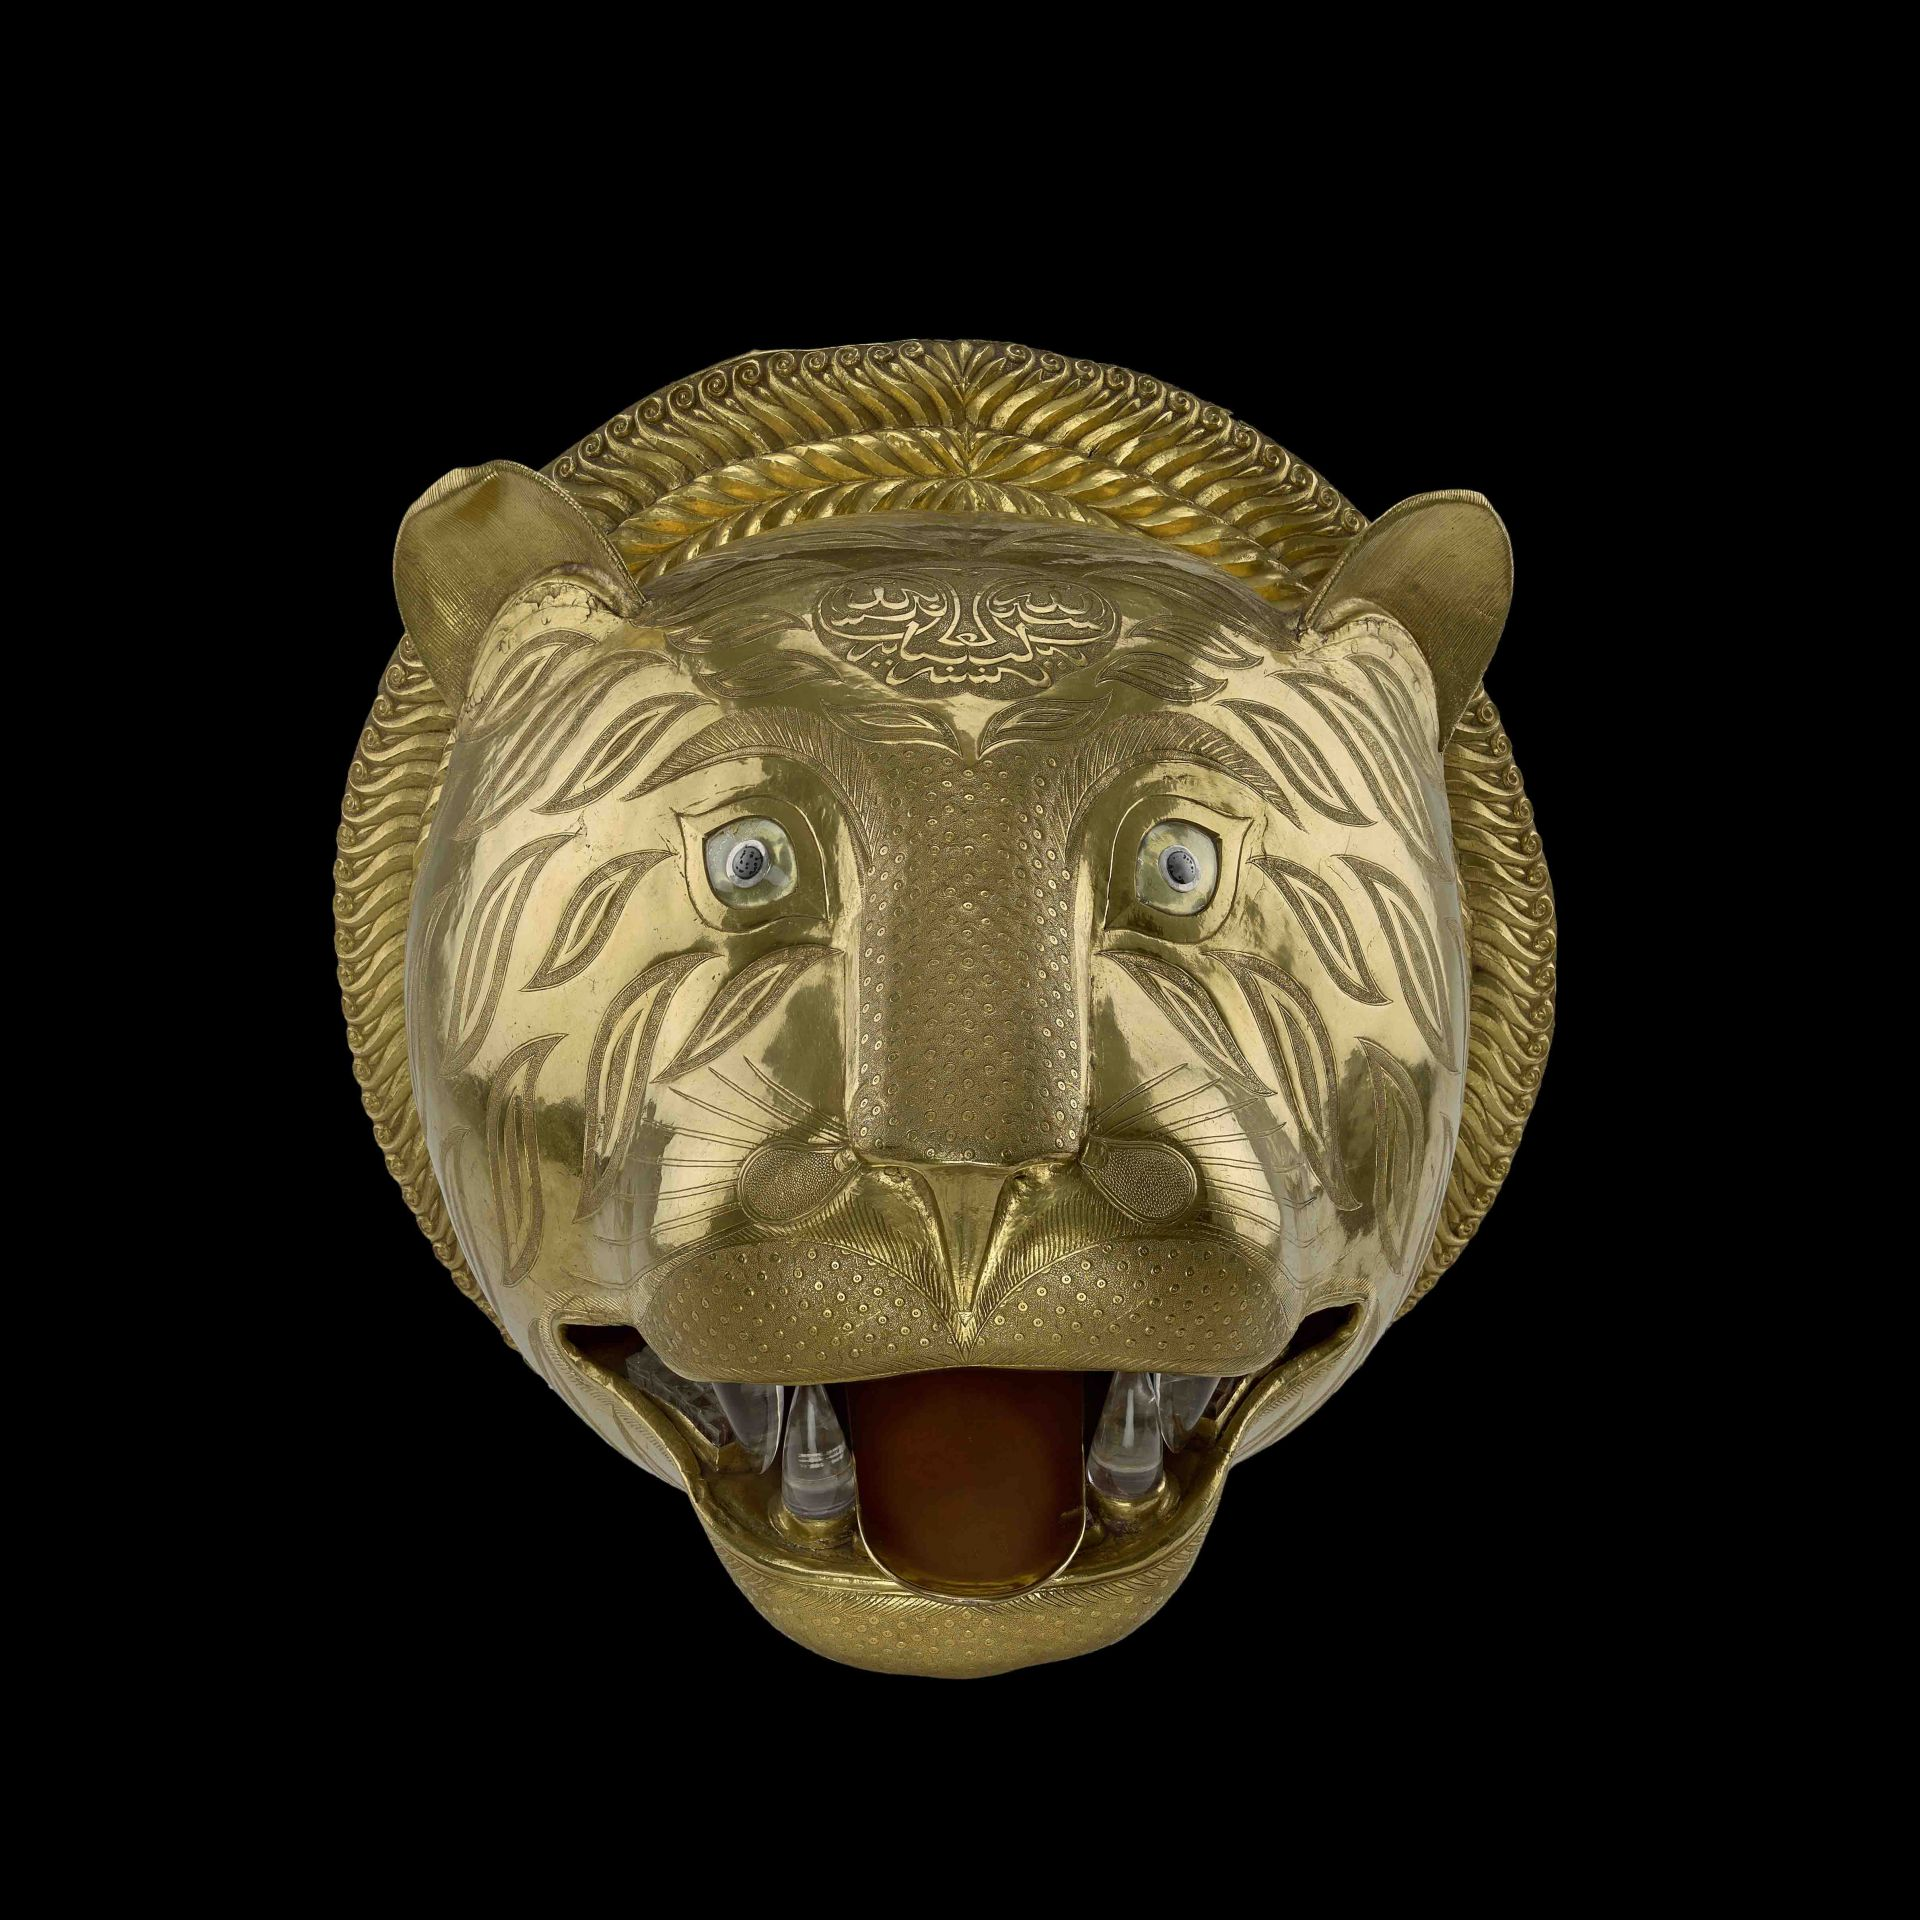 Tiger's head from the throne of Tipu Sultan, 1785-93